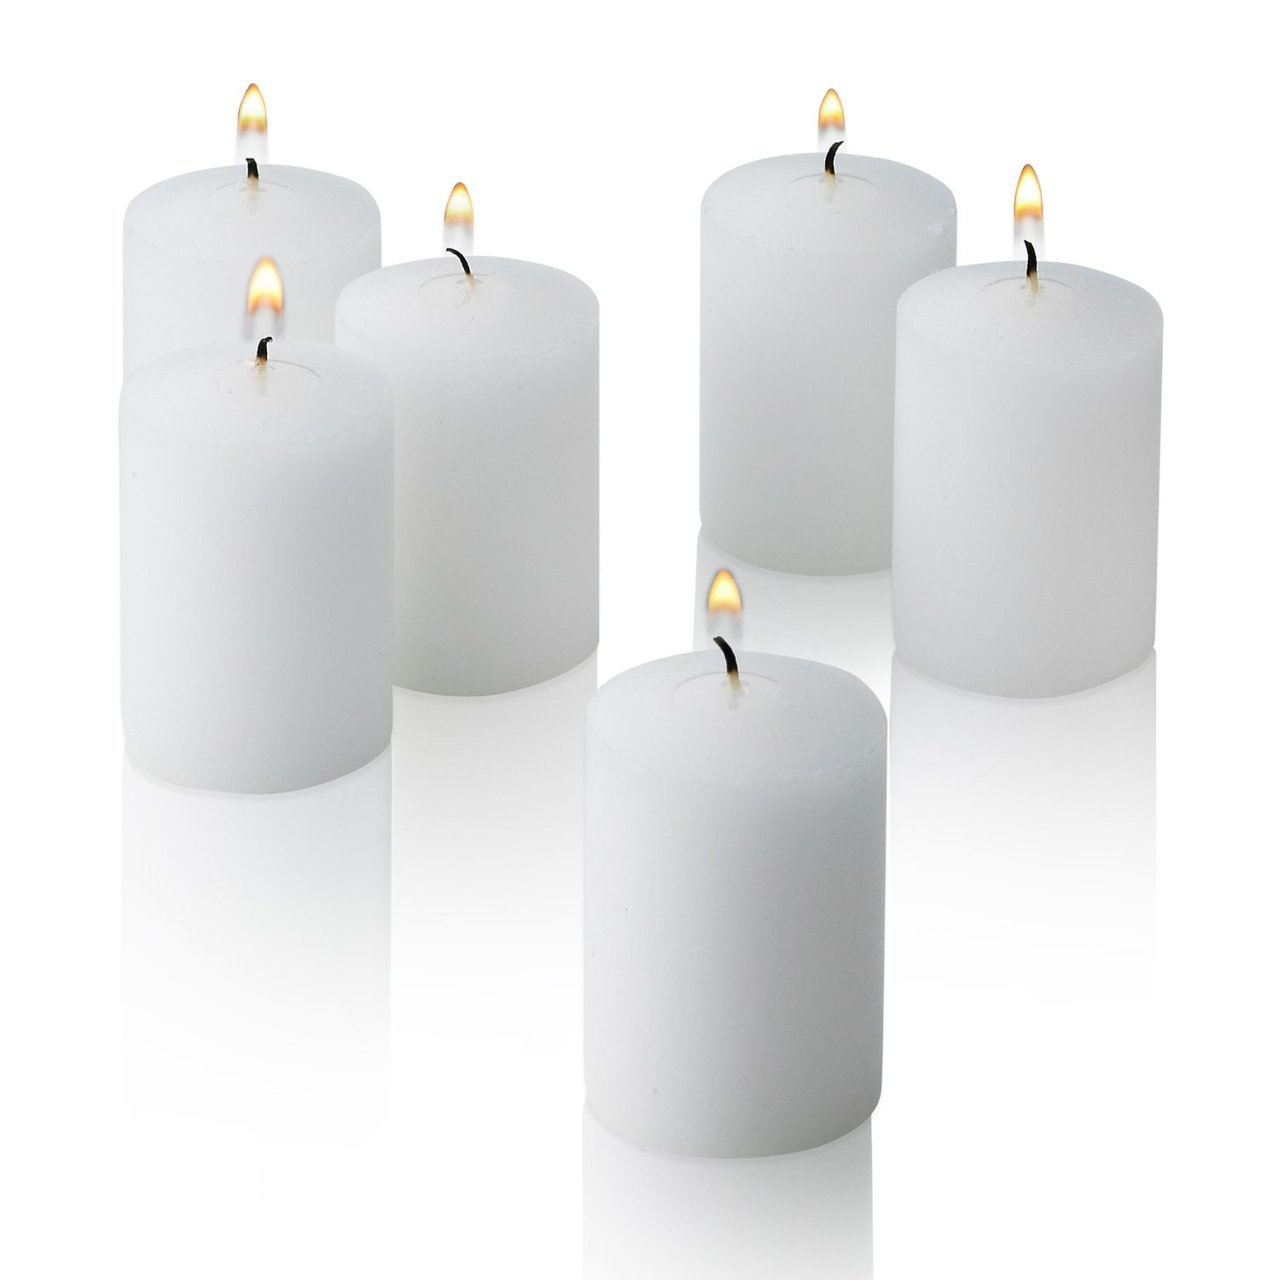 D'light Online 15 Hour Unscented White Emergency Bulk Votive Candles set of 36 by